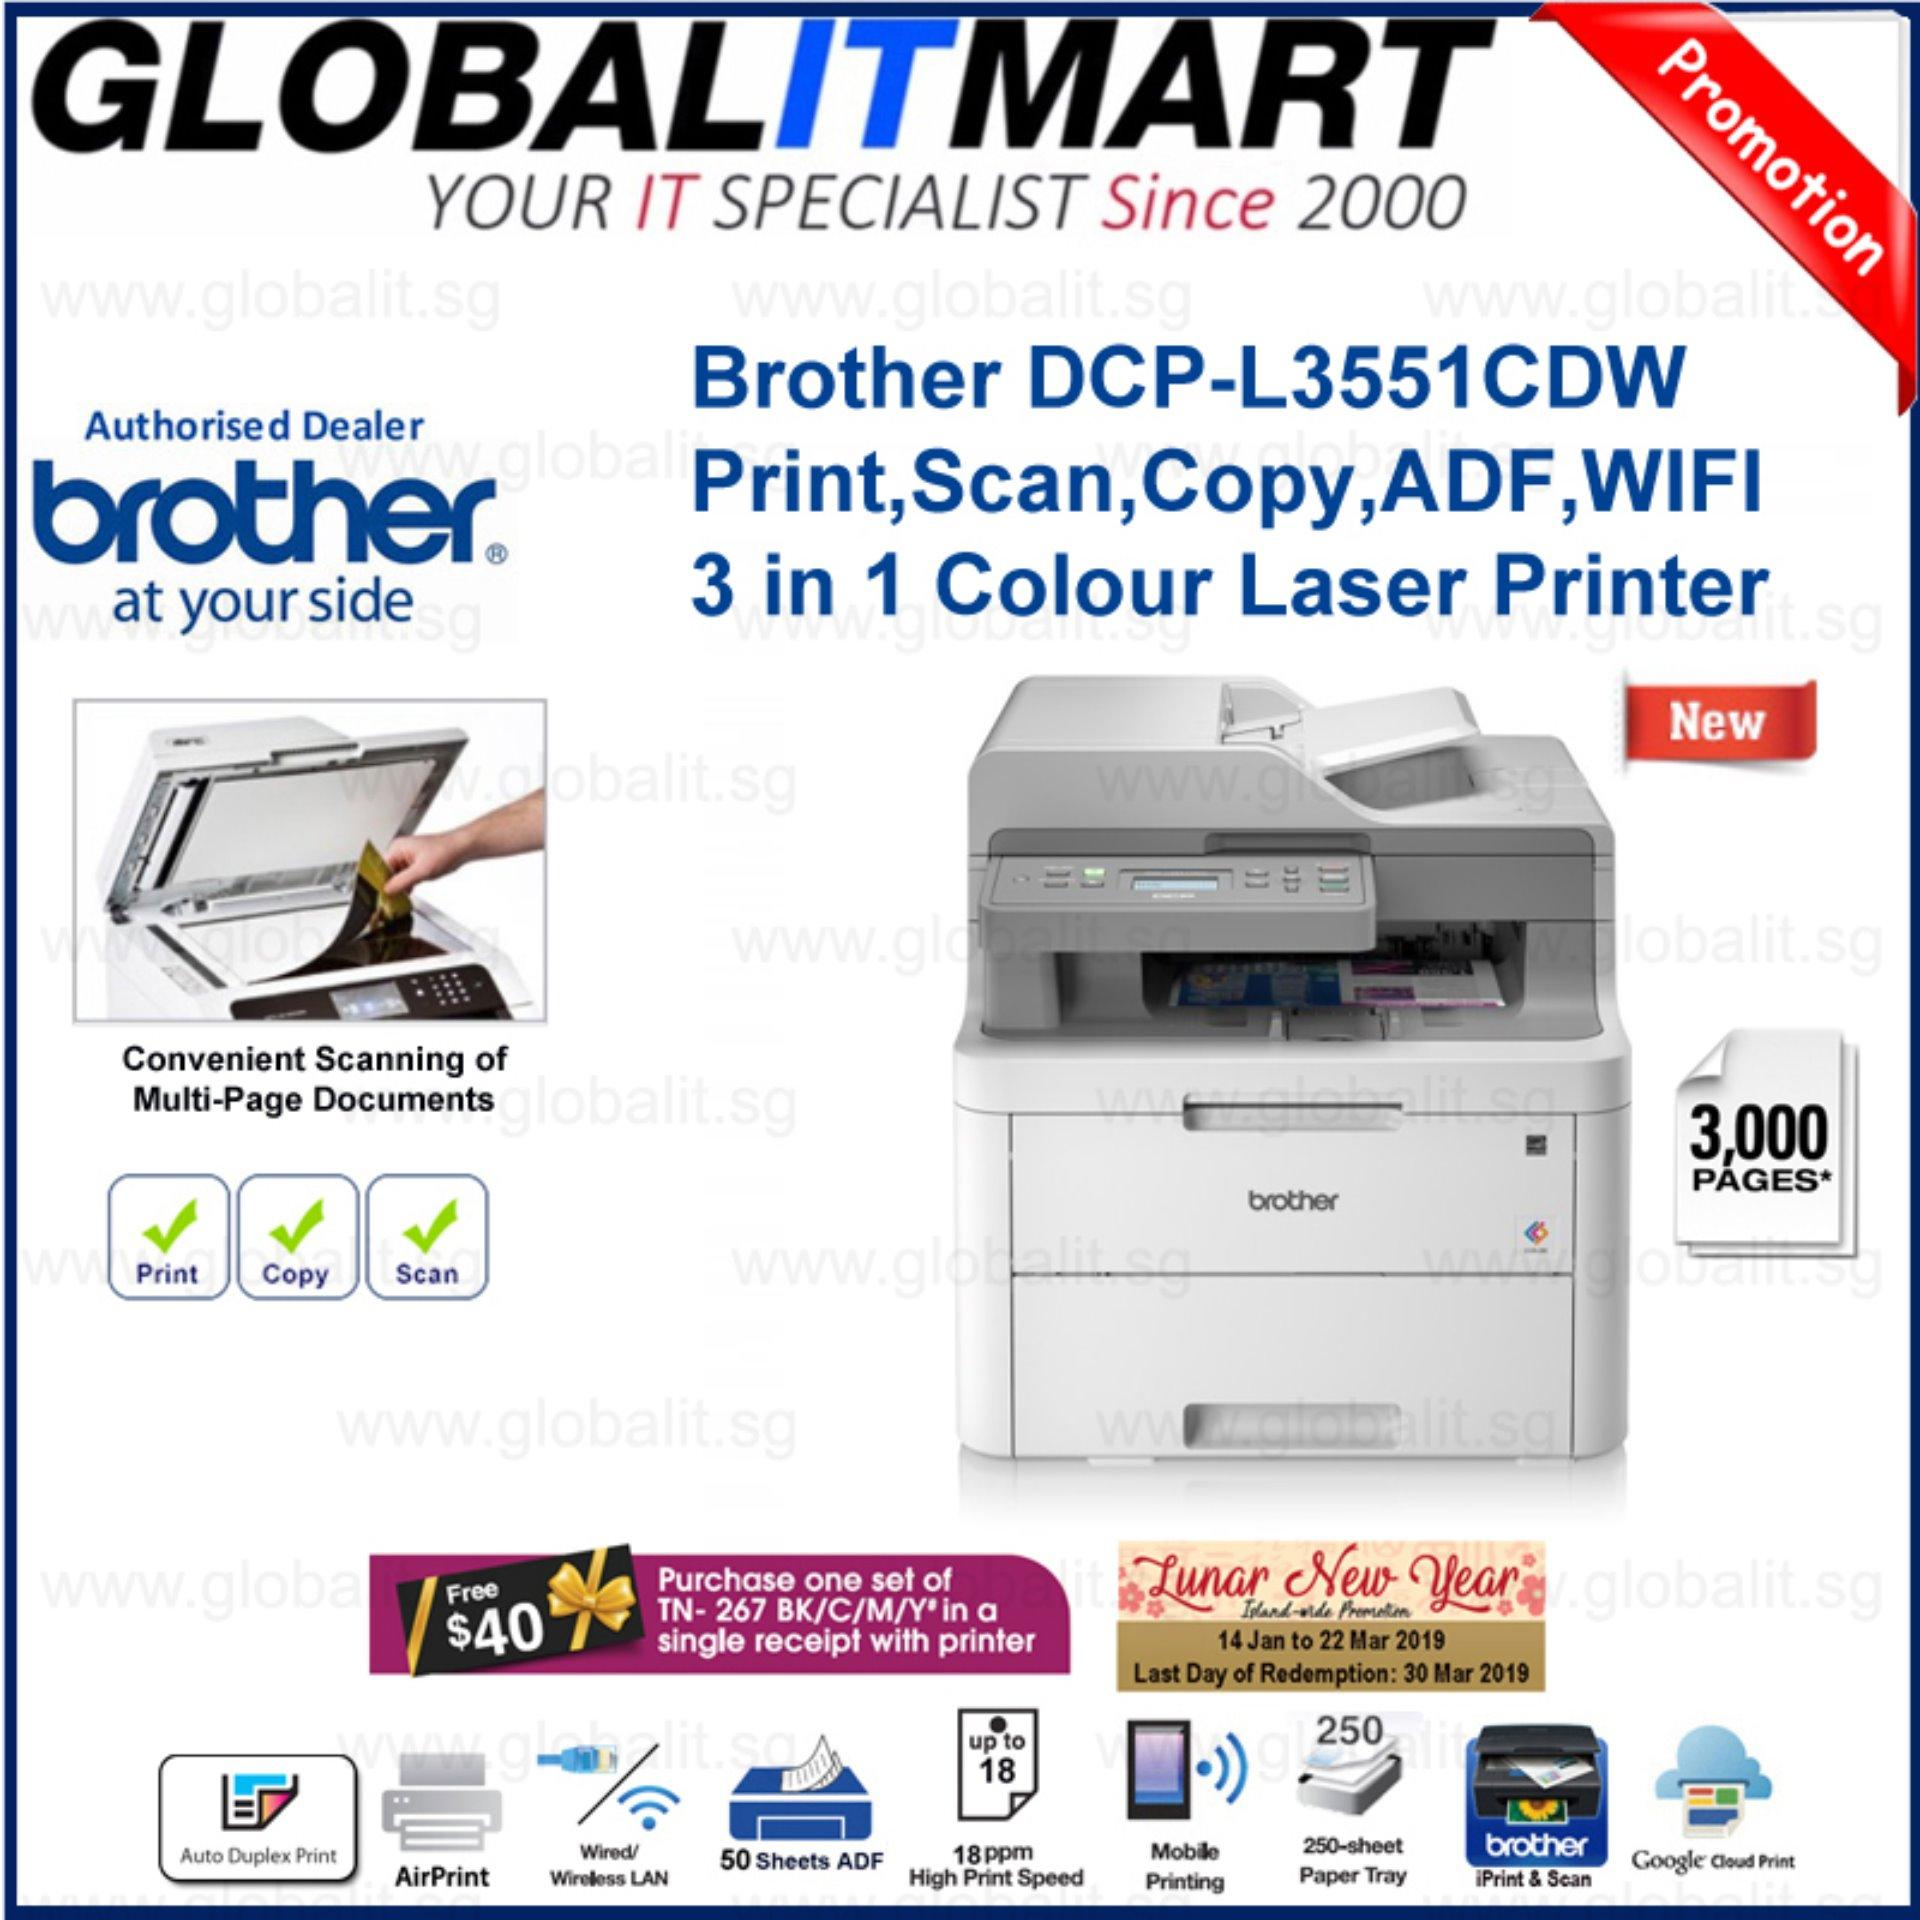 DRIVERS FOR BROTHER DCP-L3551CDW